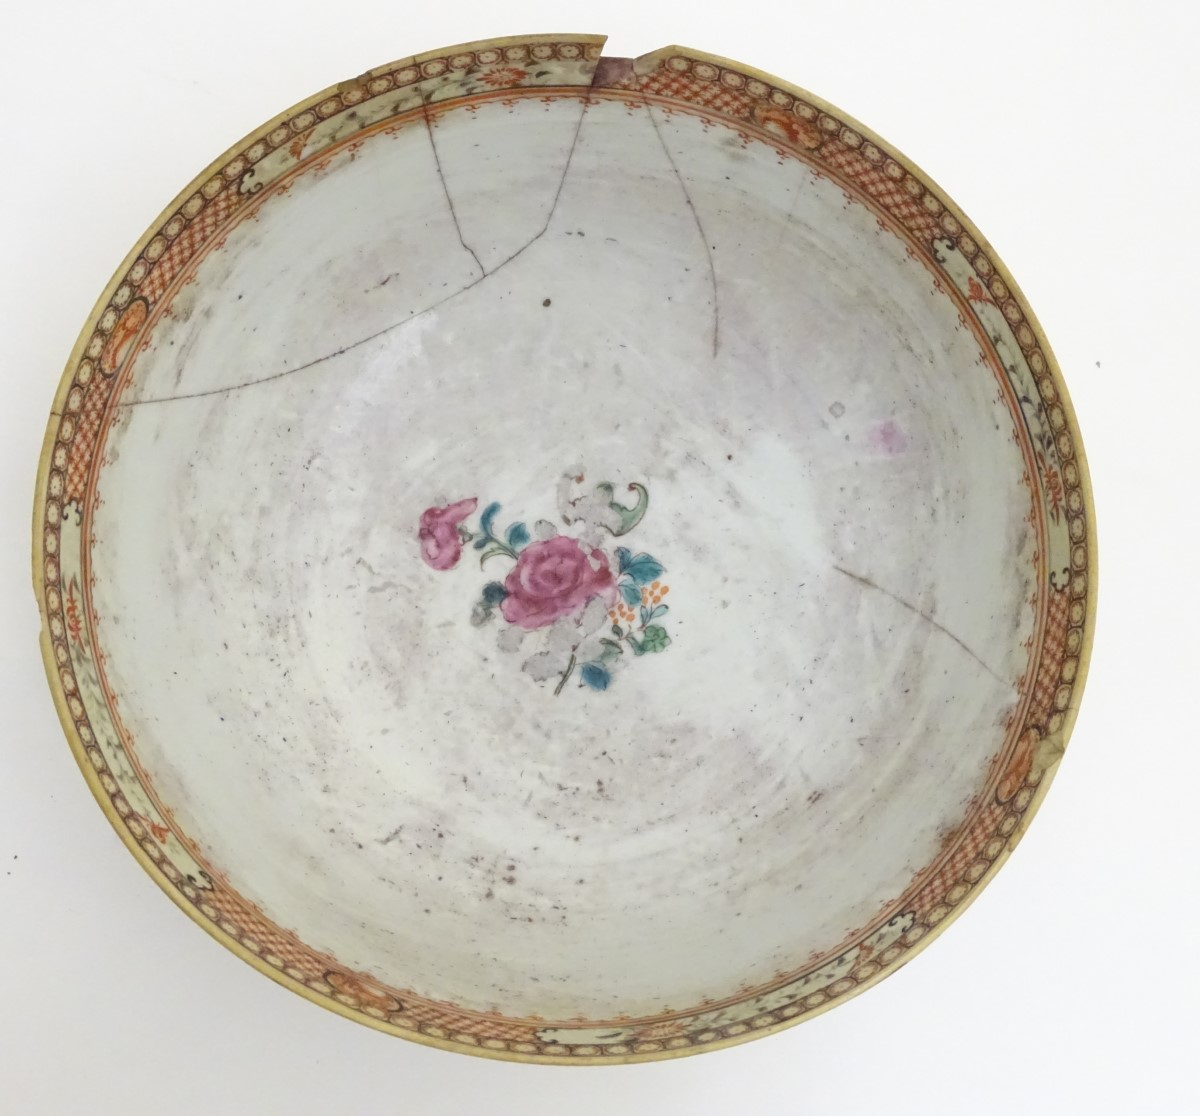 Lot 37 - An Imari scalloped-edge bowl with panelled decoration depicting birds and flowers,